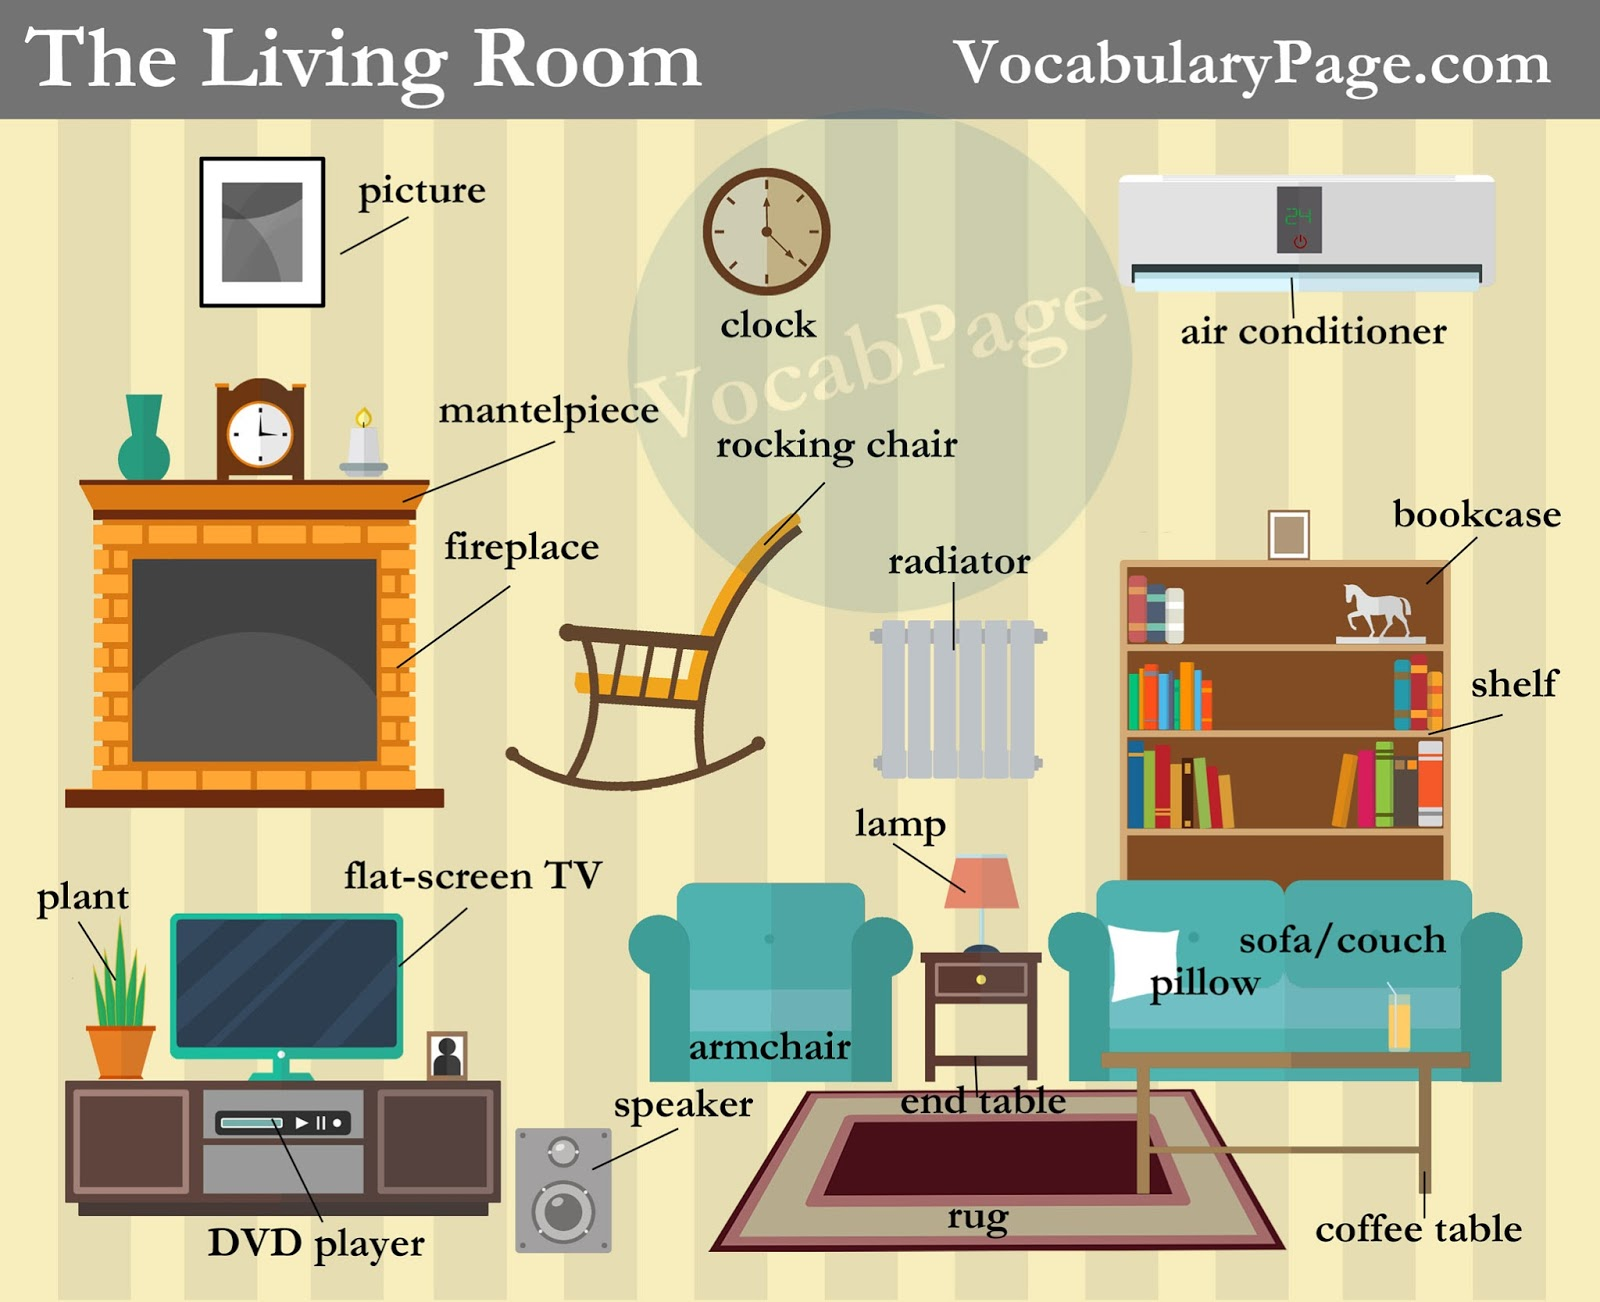 Jorges Living Room English Spelling Games Vocabulary